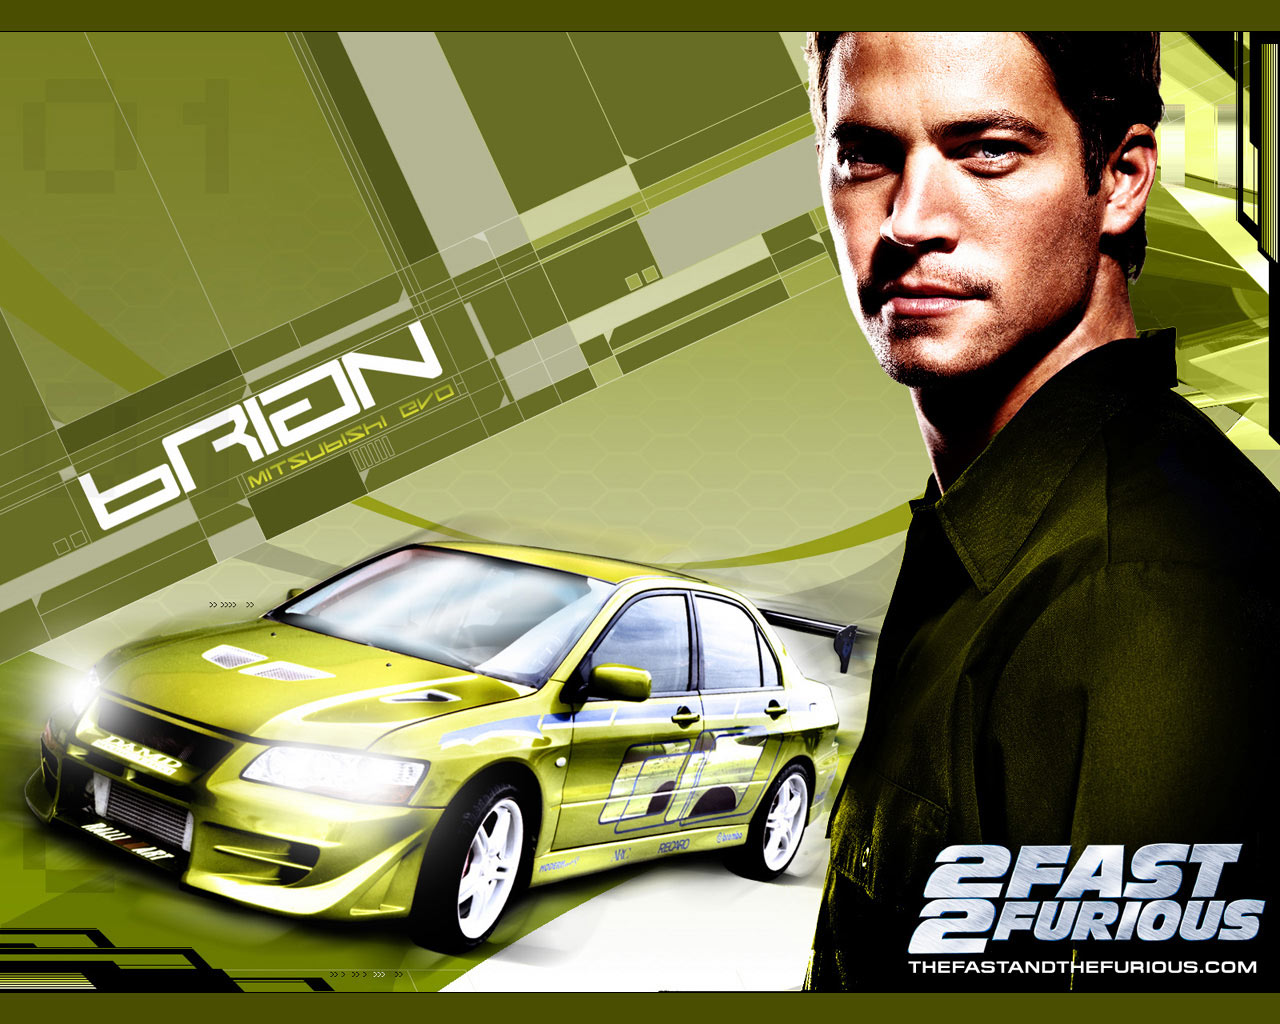 2 Fast 2 Furious Cars Wallpaper Cars And Carriages